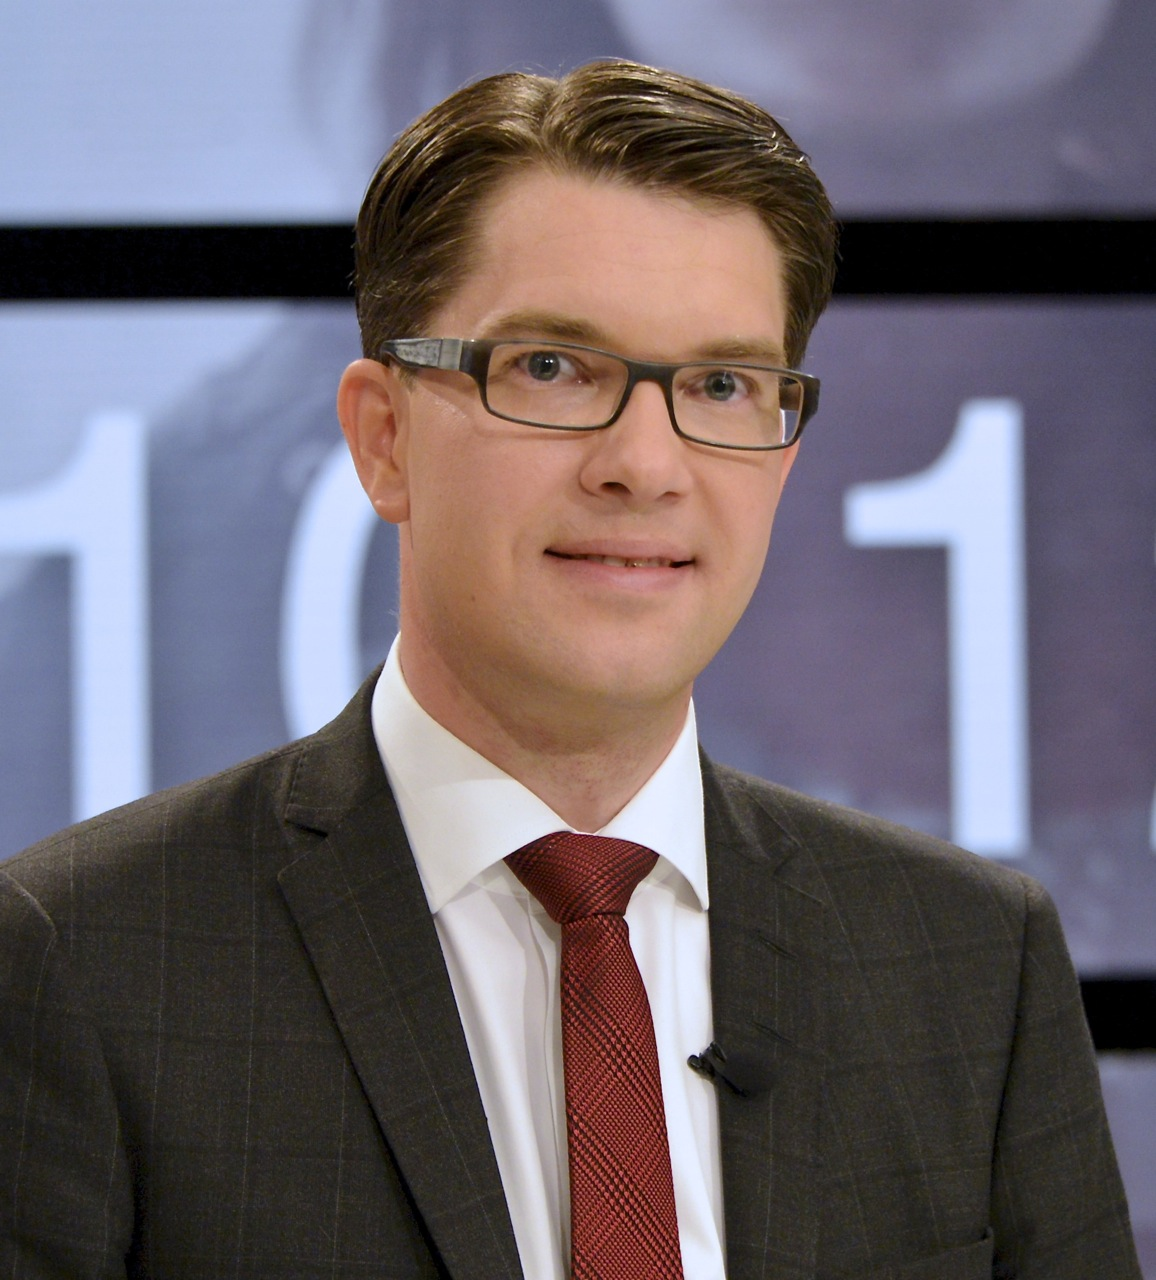 About: Jimmie Åkesson